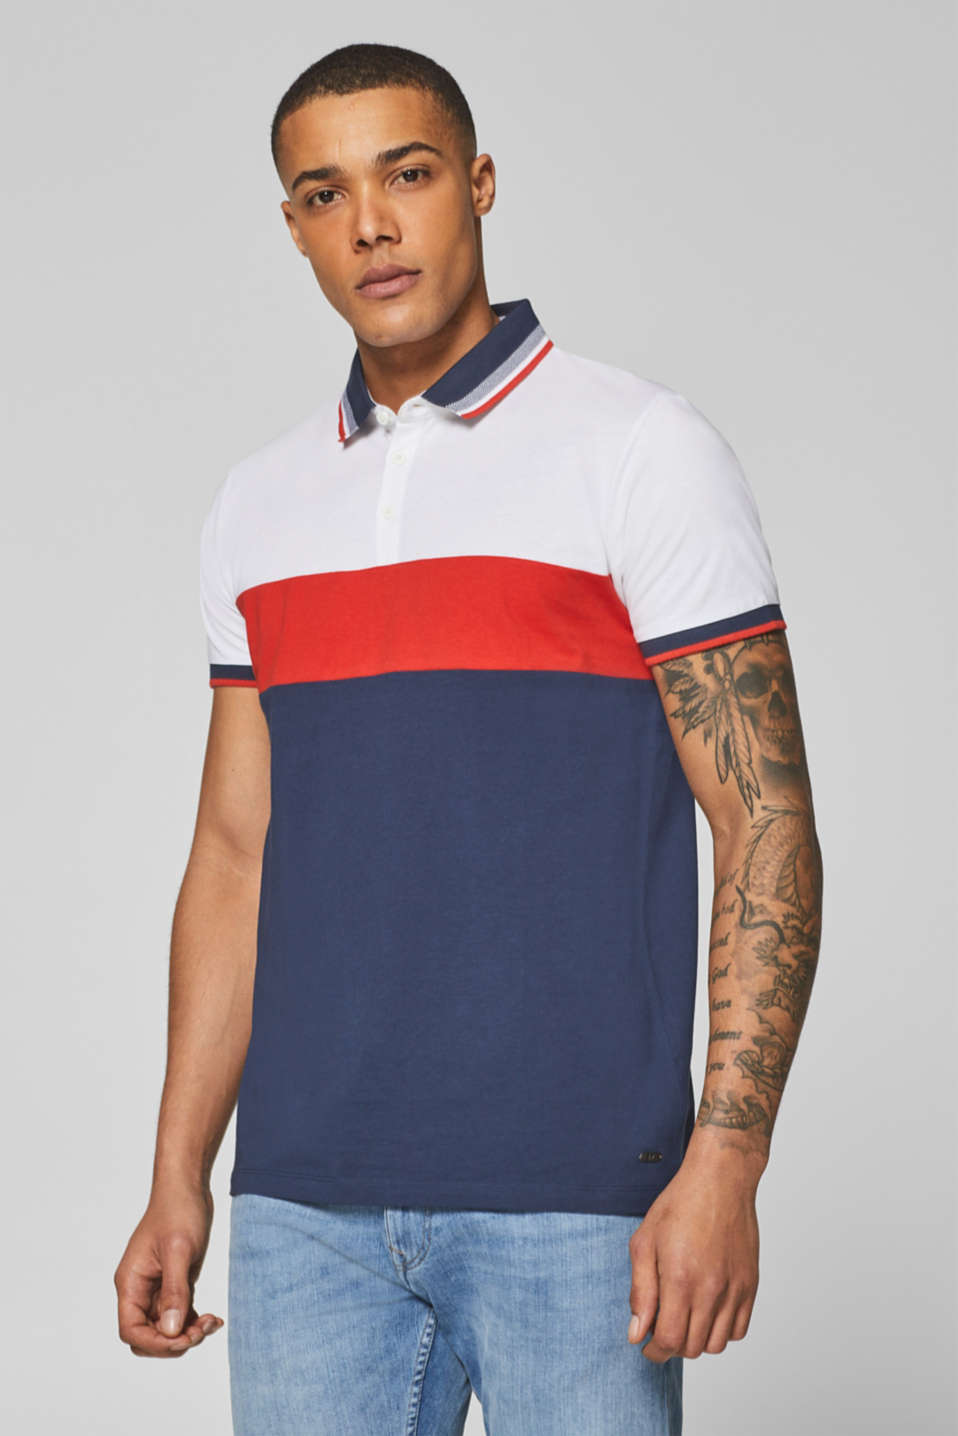 edc - Jersey polo shirt in 100% cotton